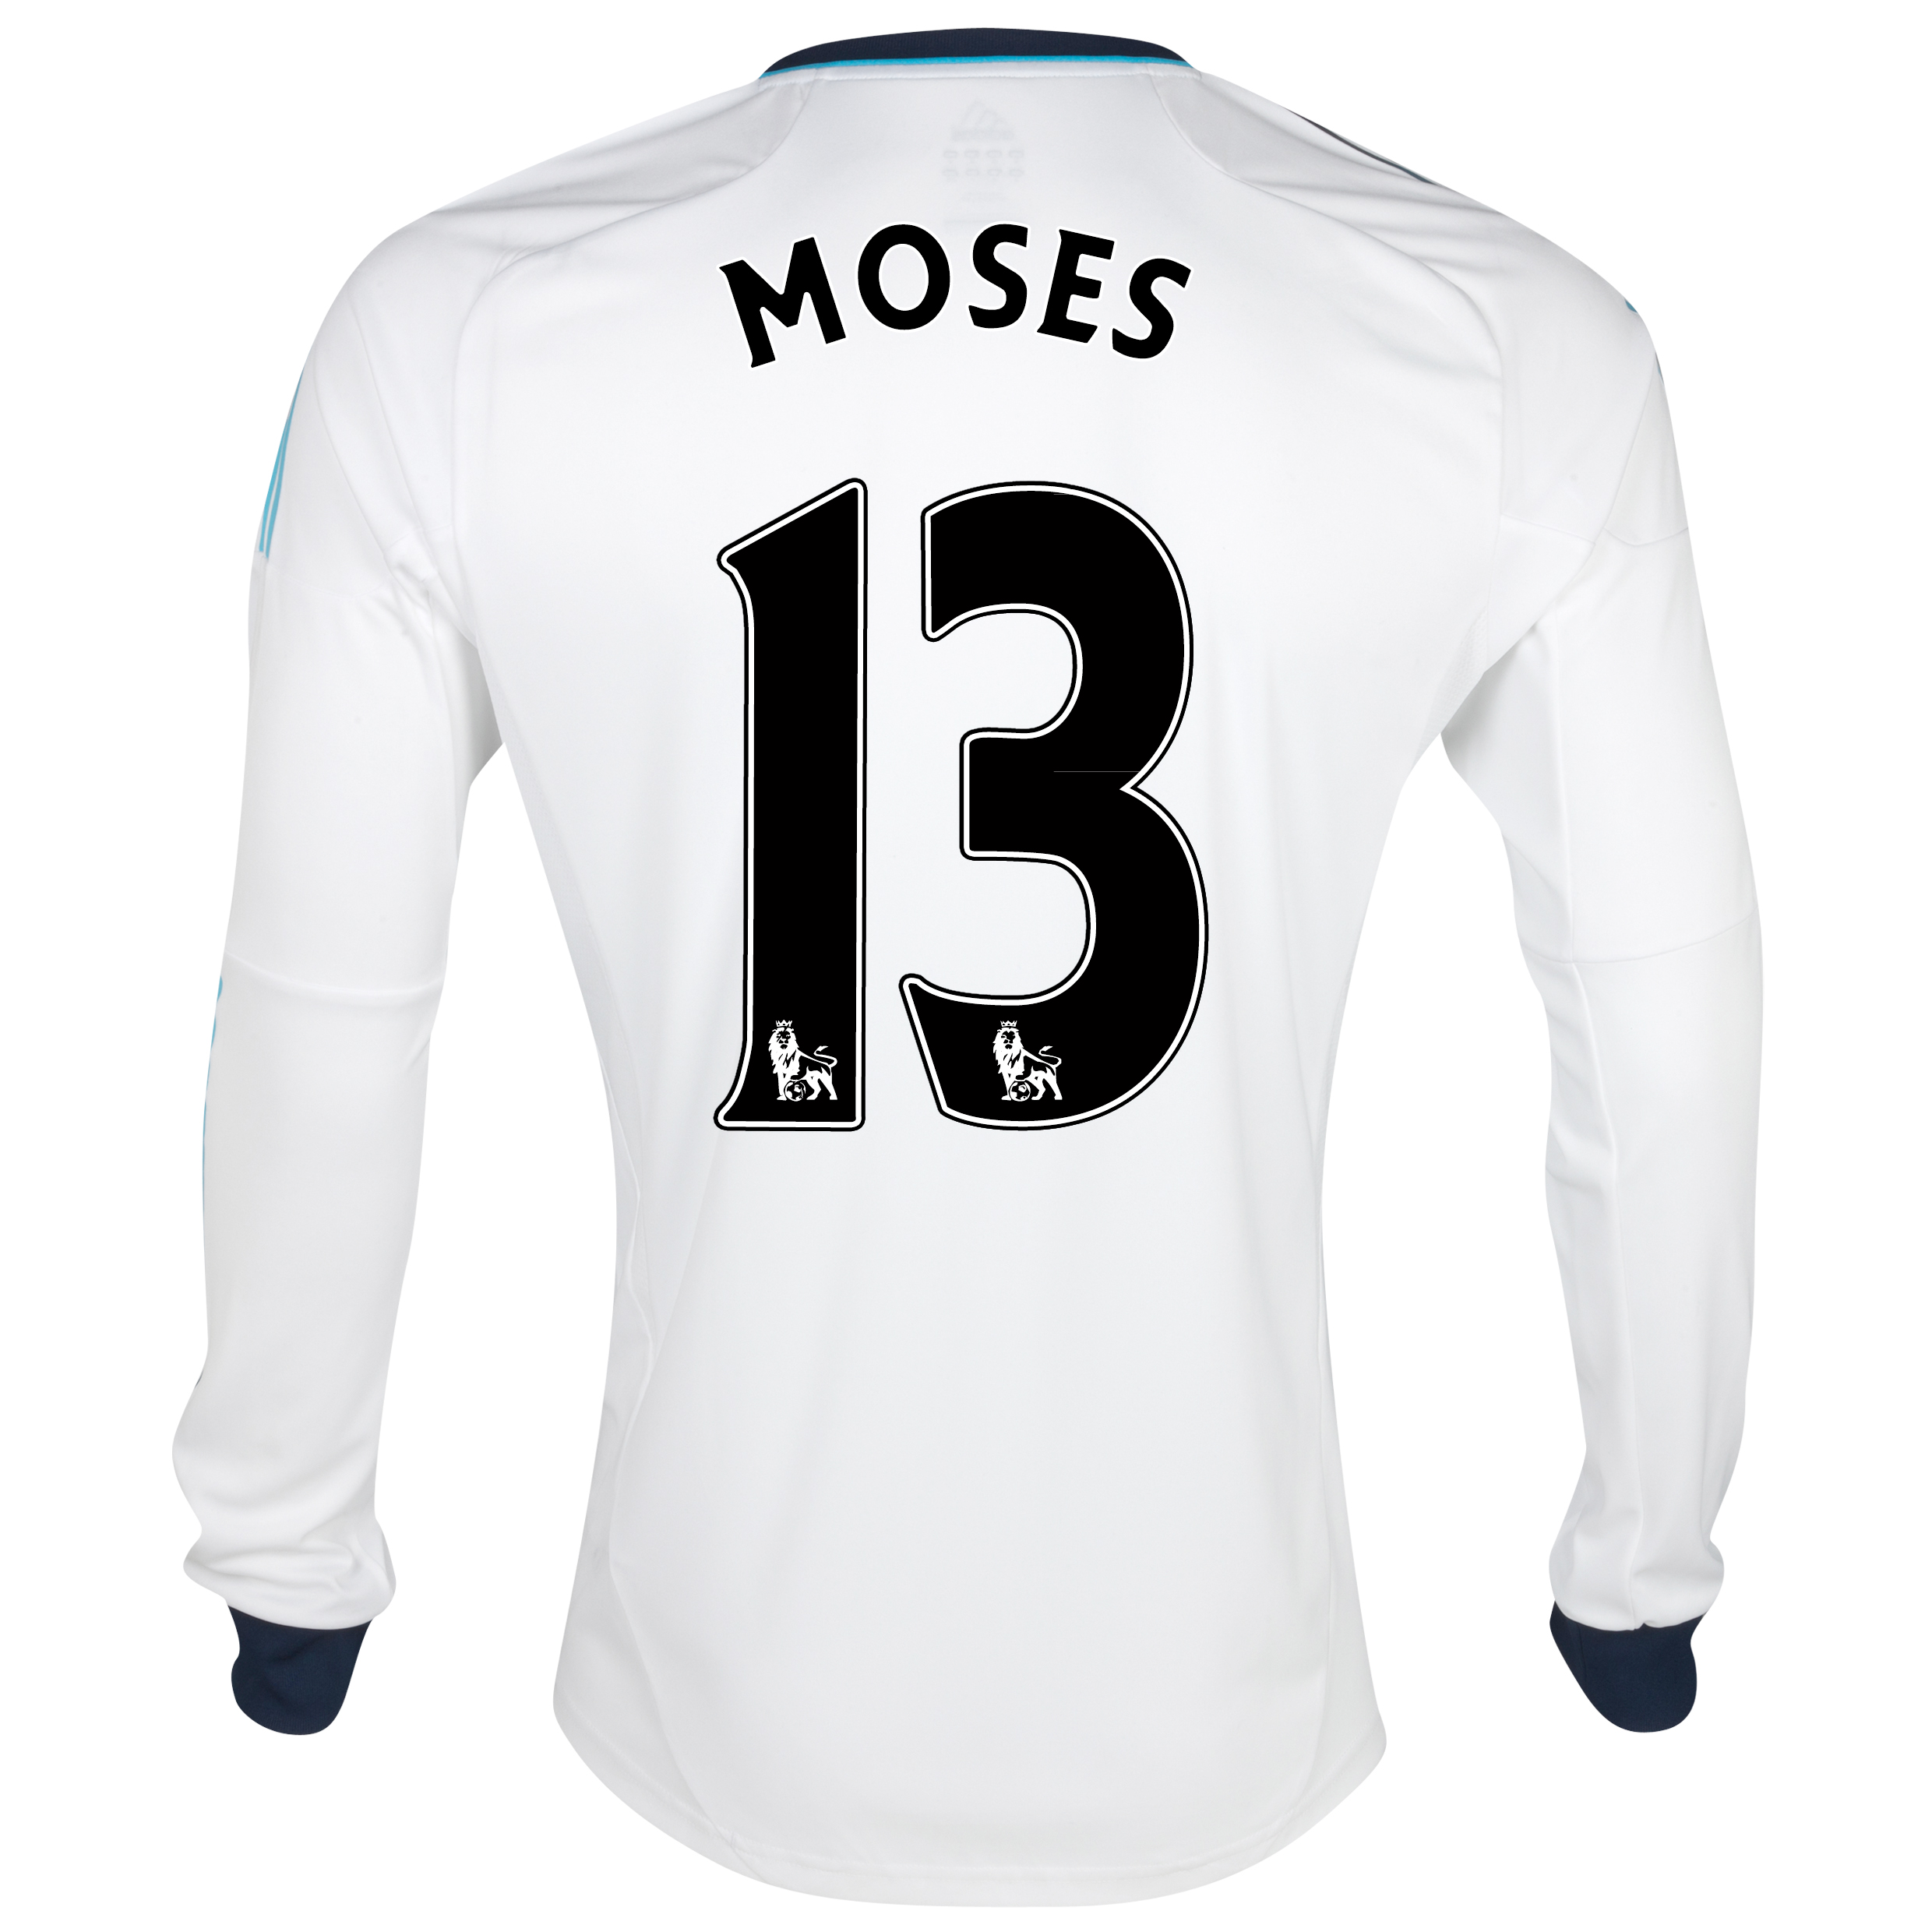 Chelsea Away Shirt 2012/13 - Long Sleeved  - Youths with Moses 13 printing